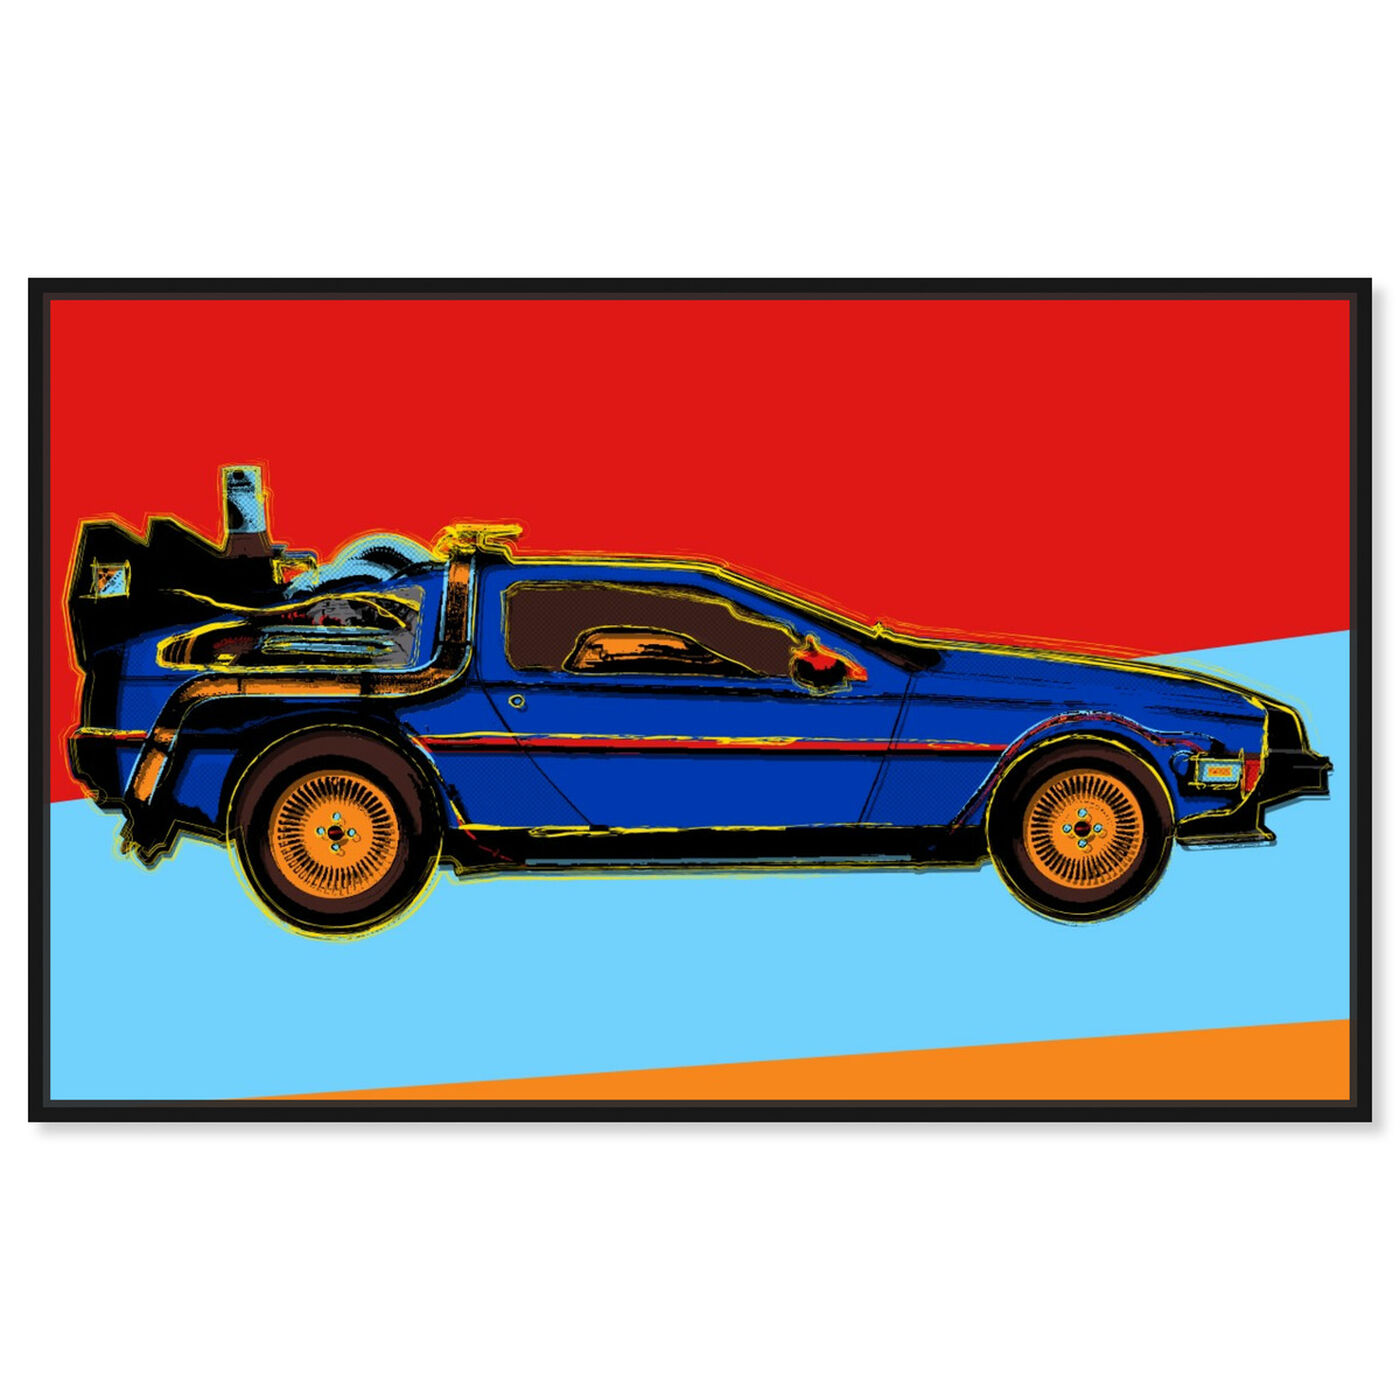 Front view of Warhol style Delorean featuring transportation and automobiles art.